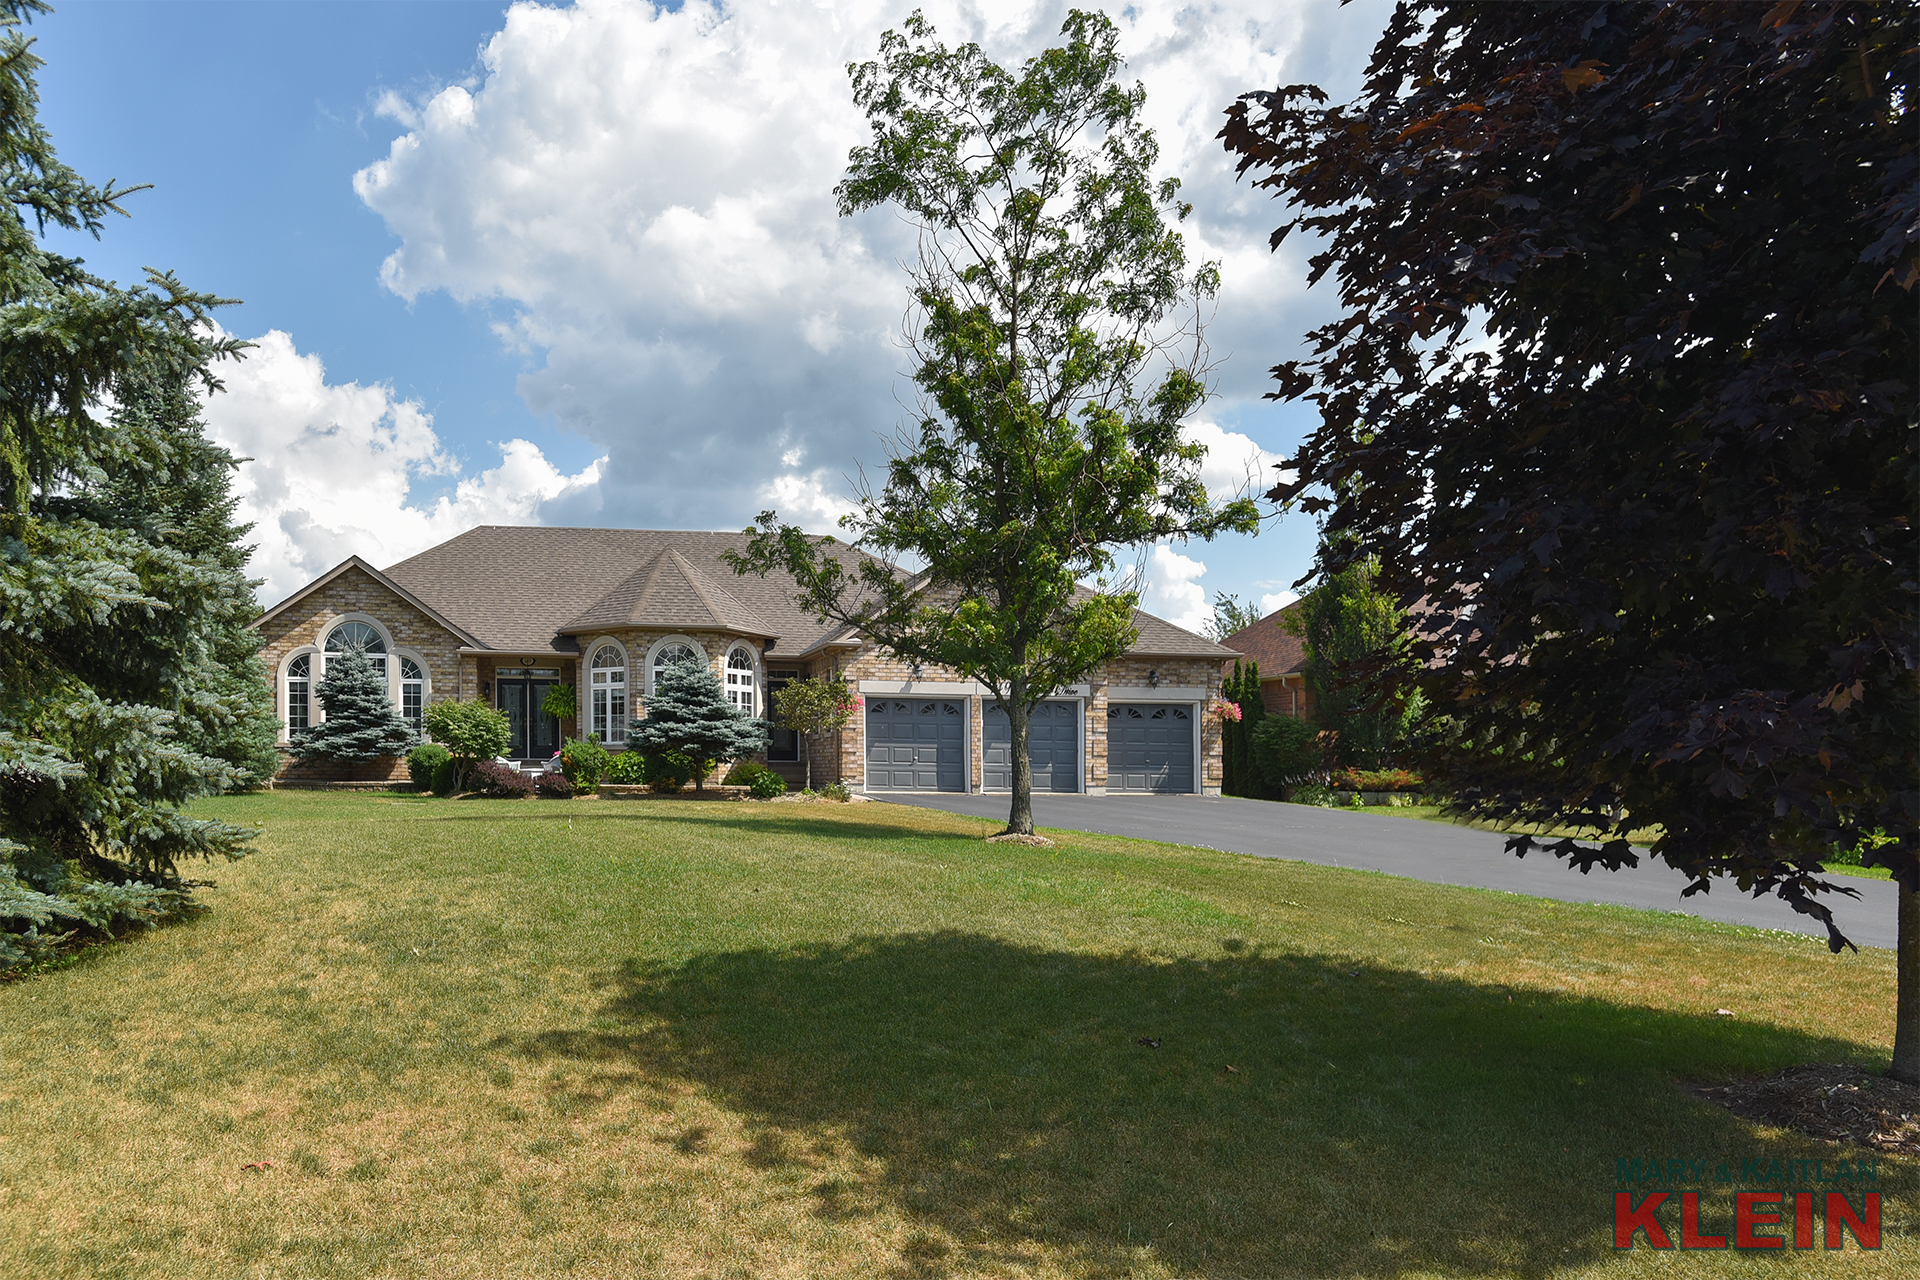 4 bedroom bungalow for sale, erin, ontario